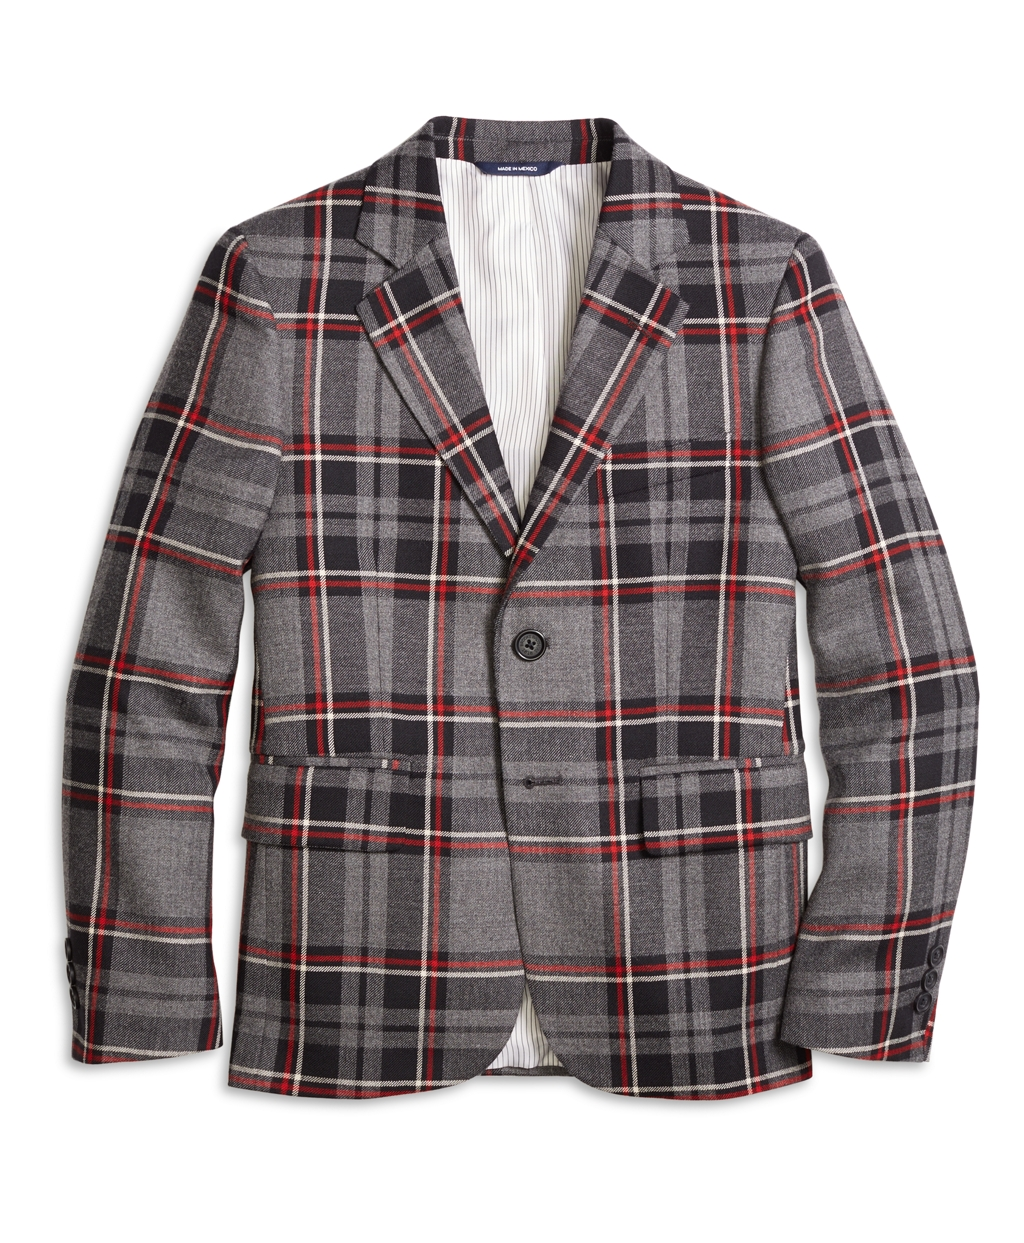 Victorian Kids Costumes & Shoes- Girls, Boys, Baby, Toddler Brooks Brothers Boys Boys Two-Button Plaid Wool Suit Jacket $91.20 AT vintagedancer.com